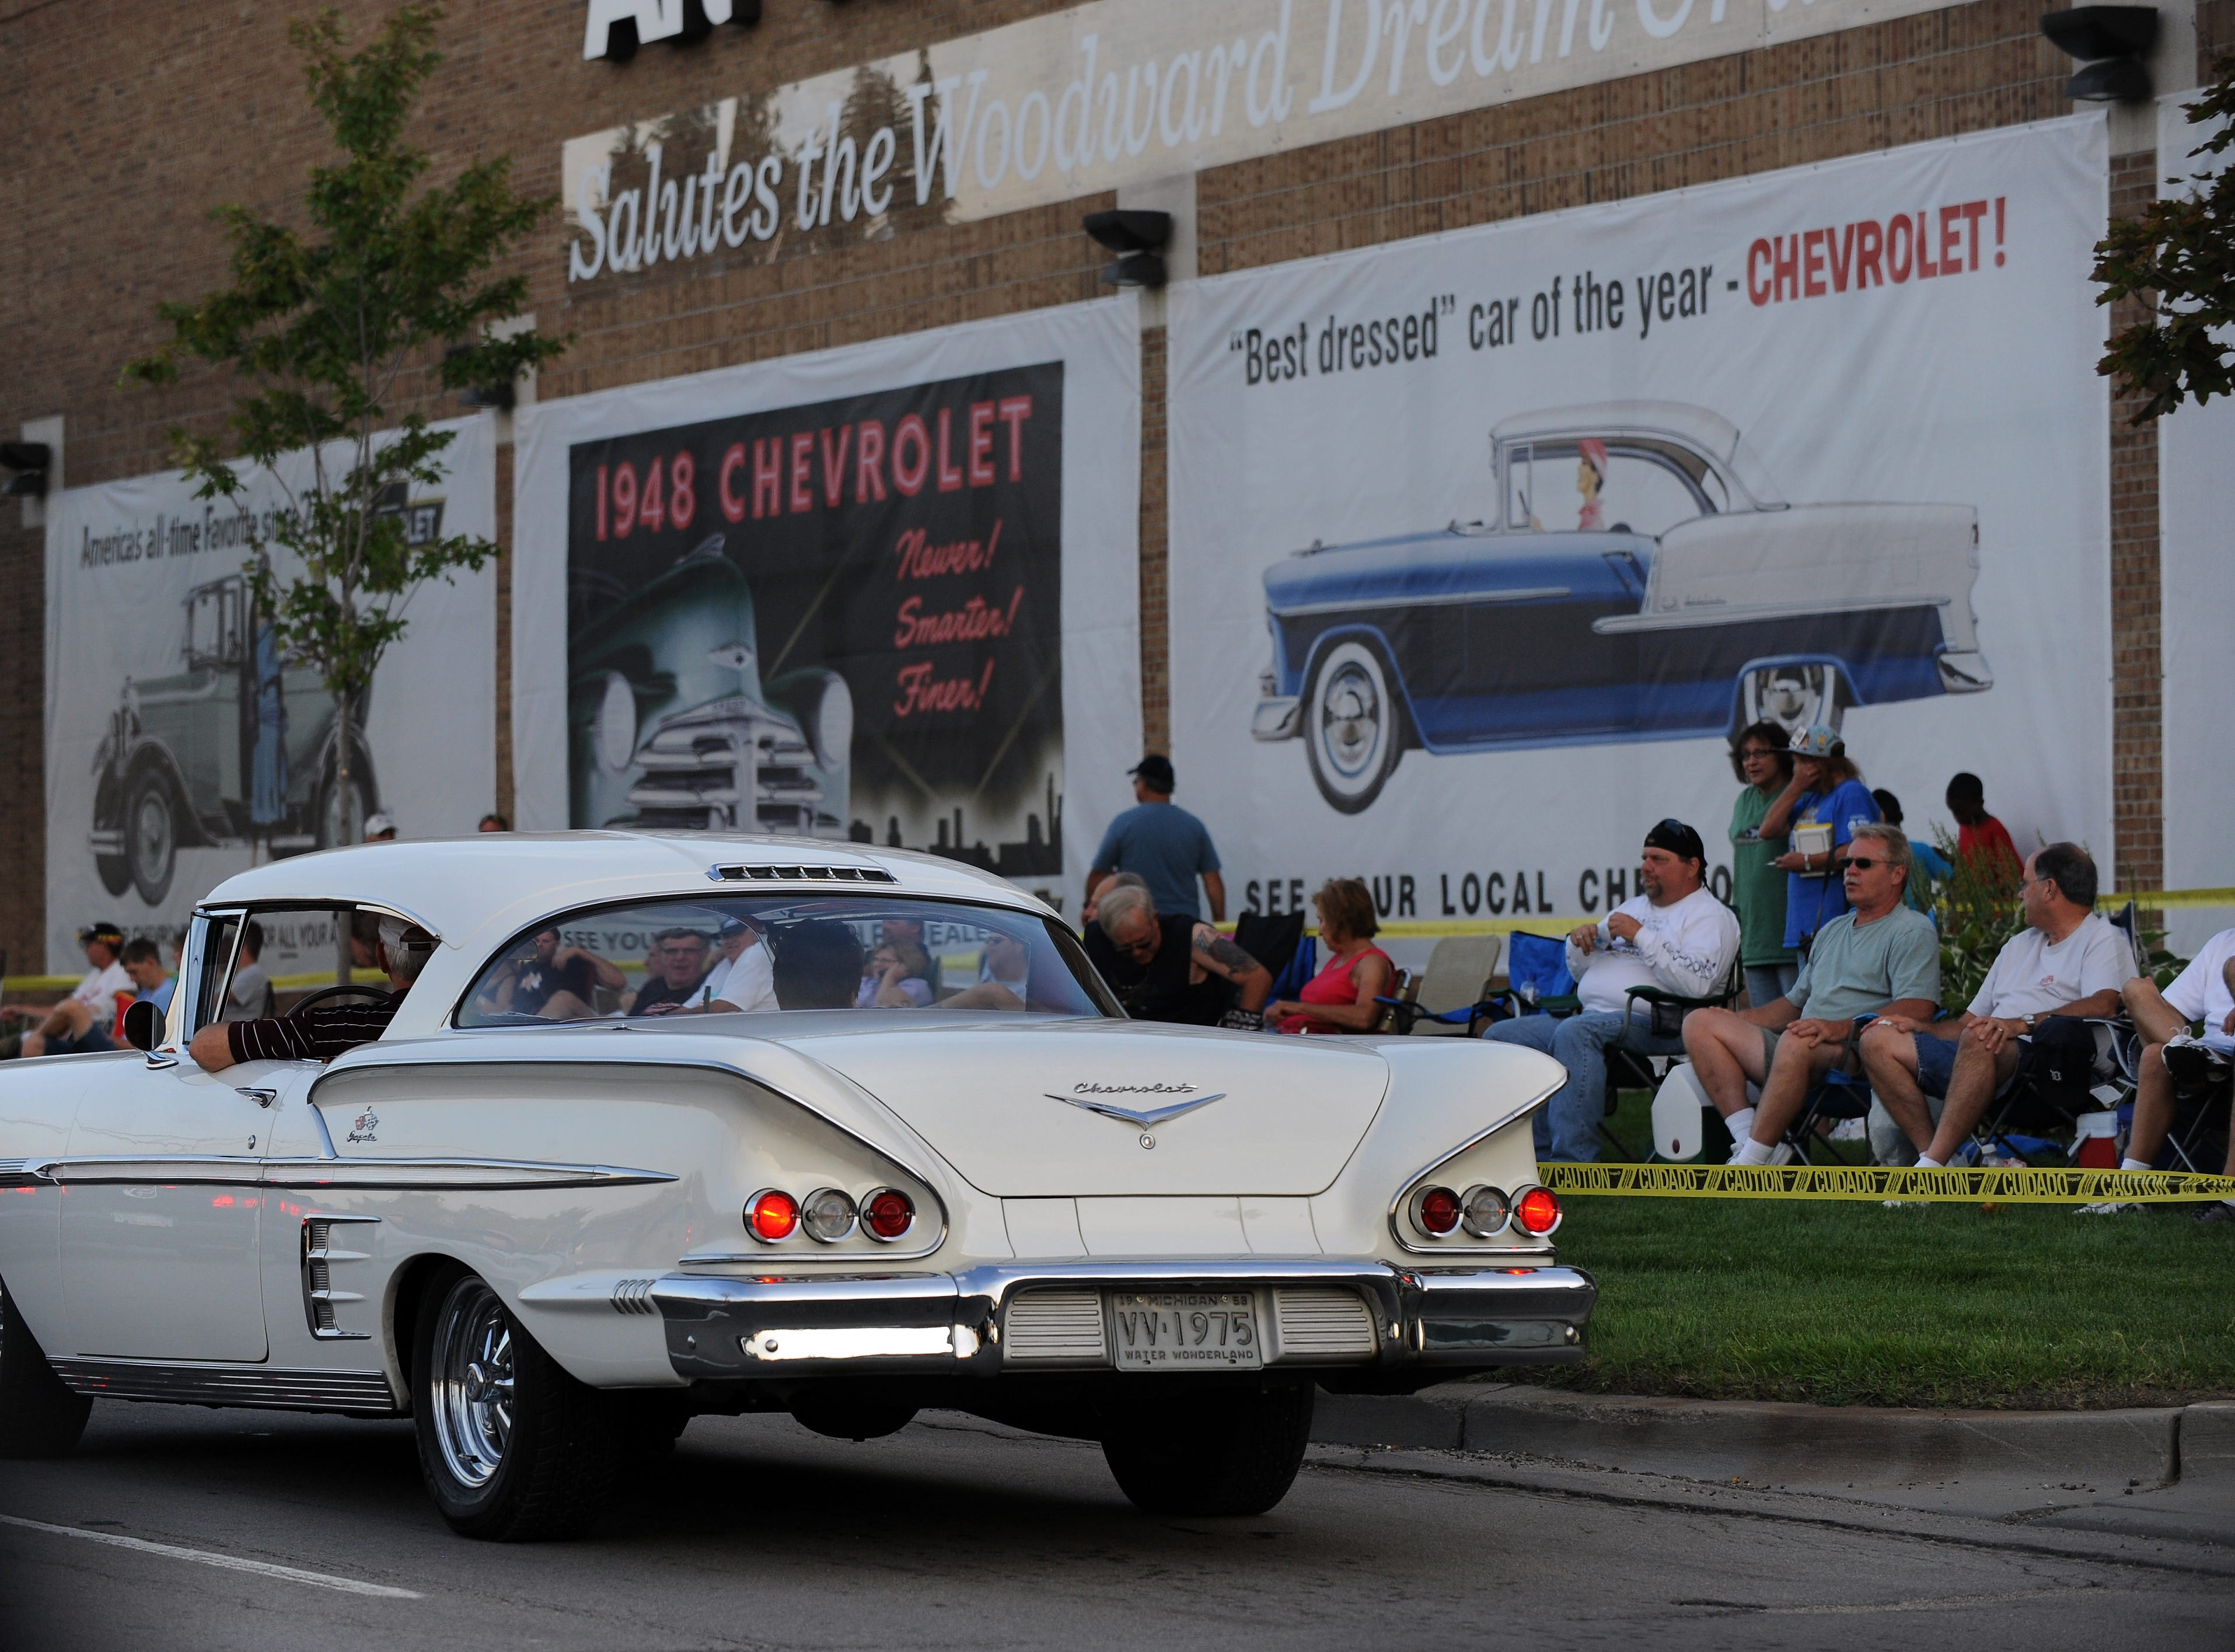 A white Chevy Impala motors past vintage Chevy ads decorating the side of the Art Van Furniture on Woodward in Royal Oak, Aug. 19, 2011.